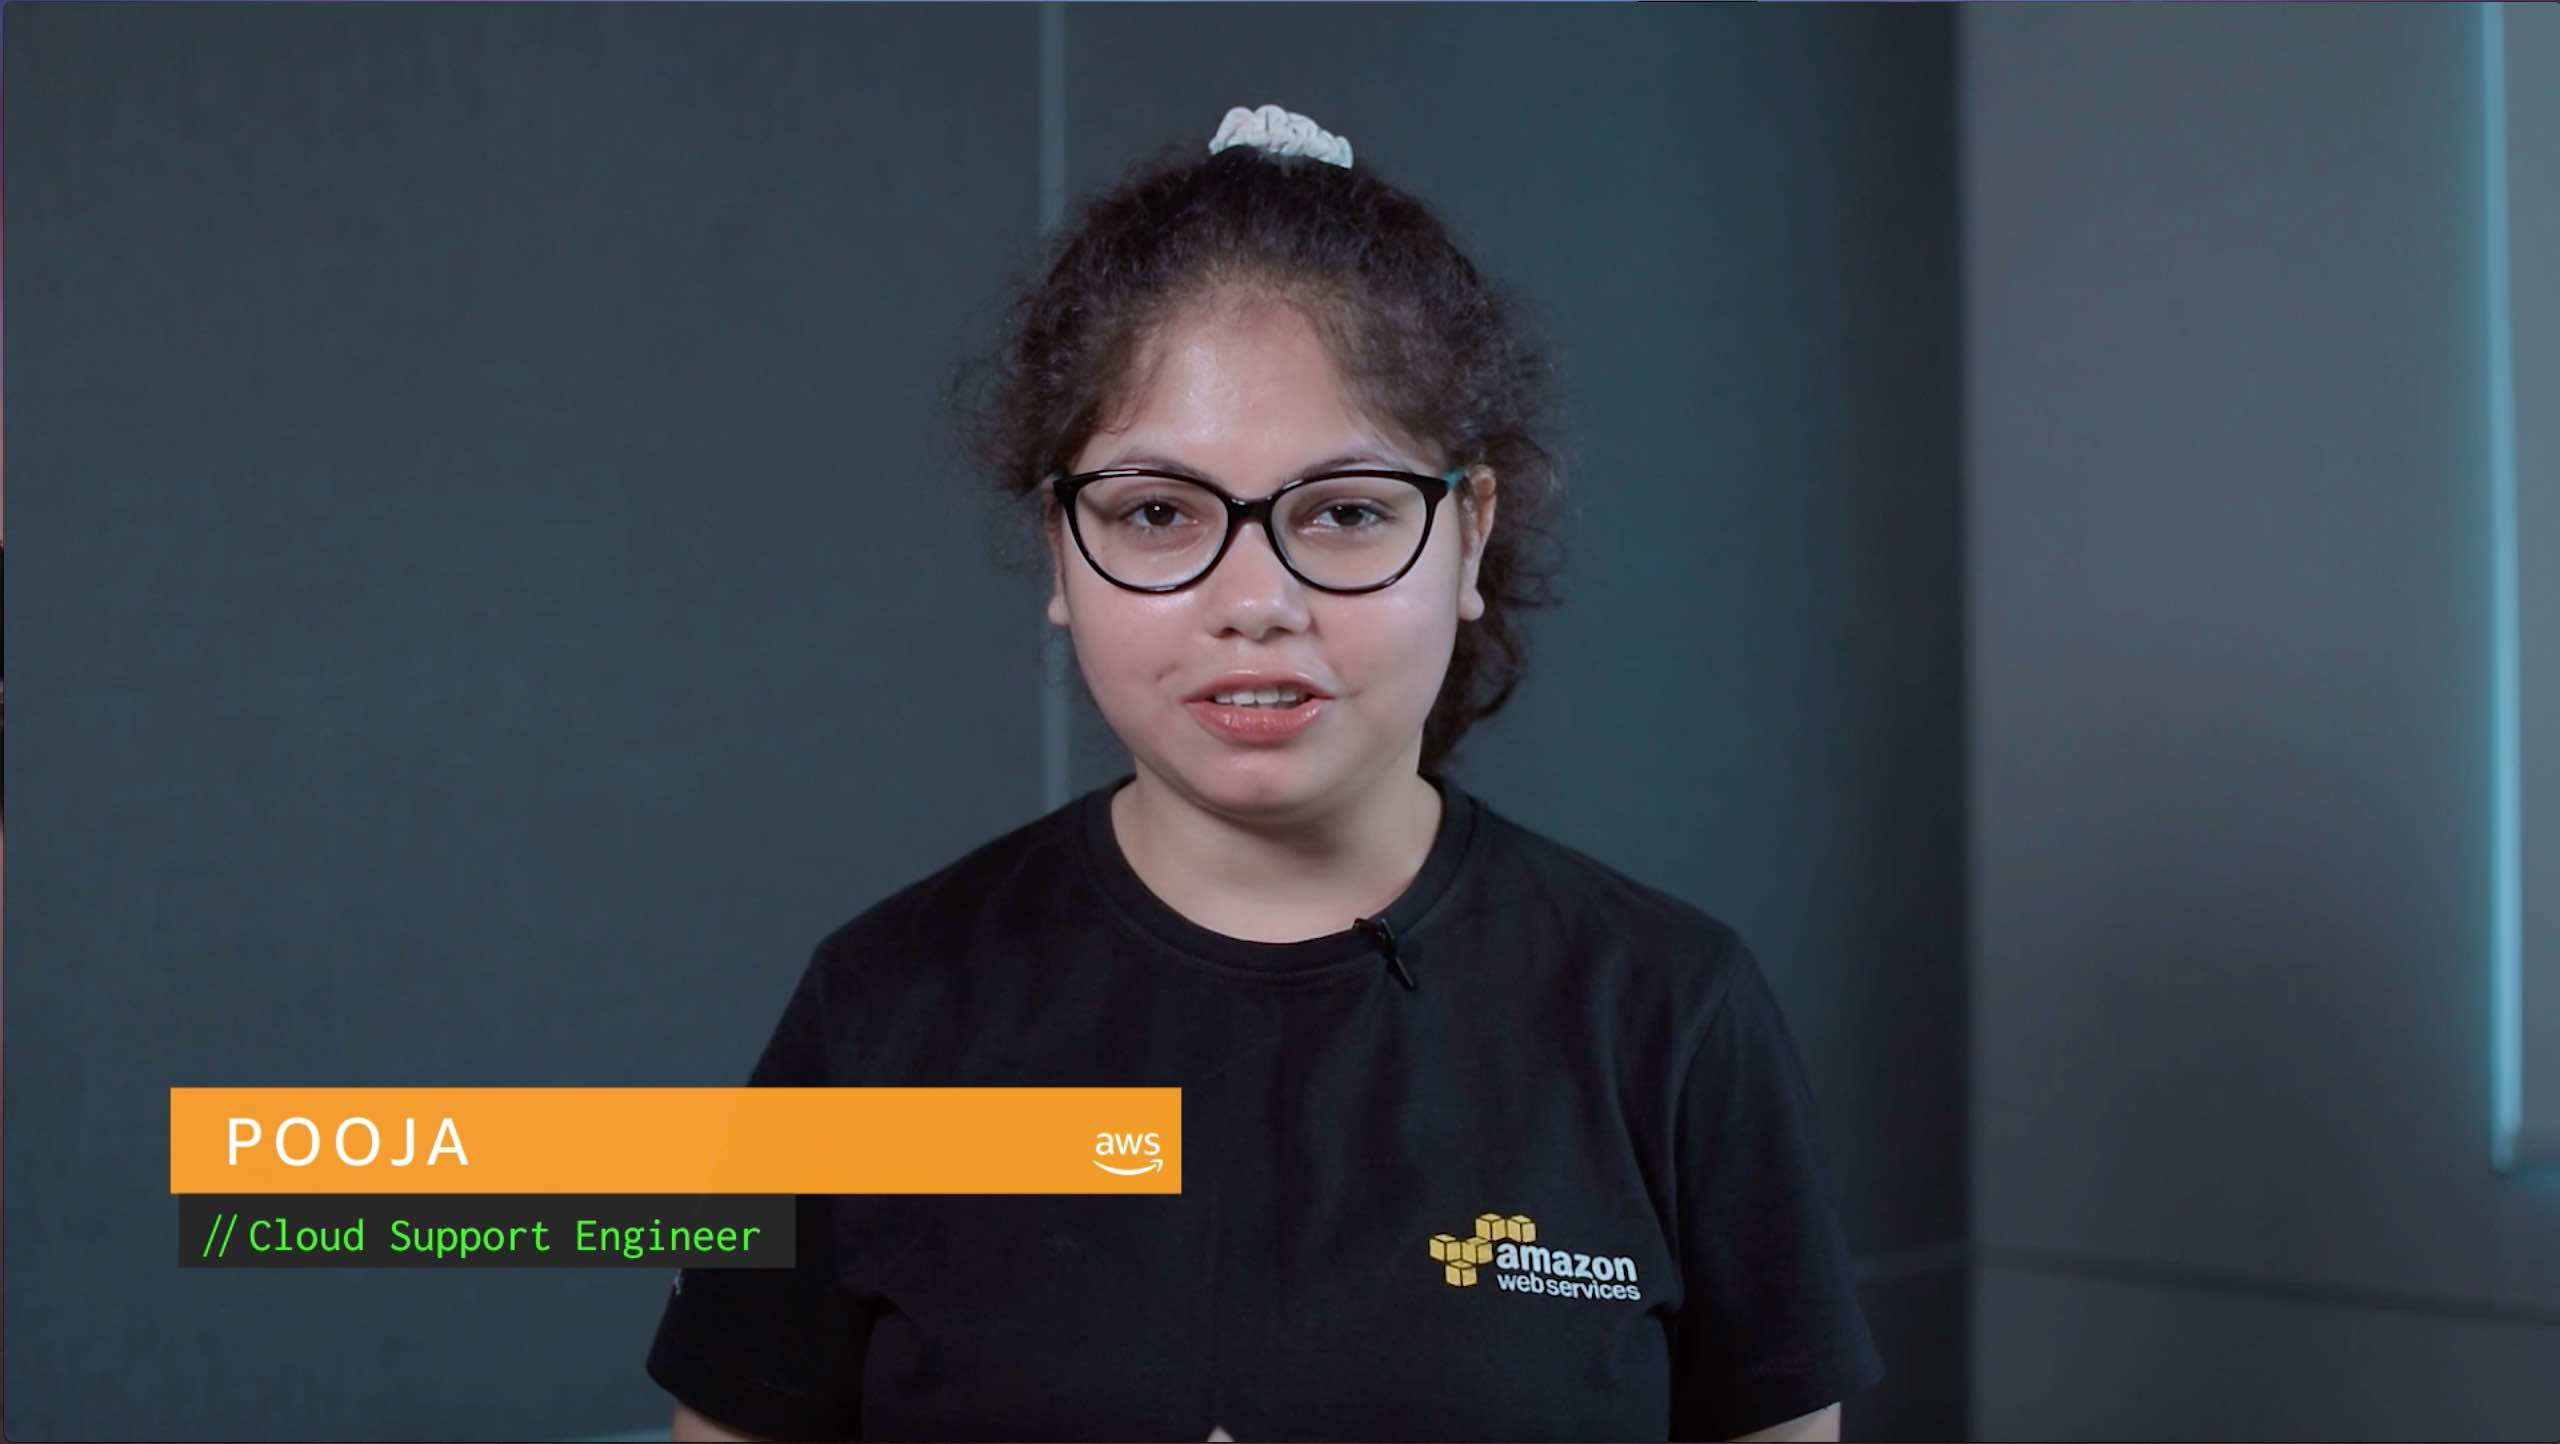 Pooja shows how to assign a custom DNS server that persists across reboots to an Amazon EC2 instance